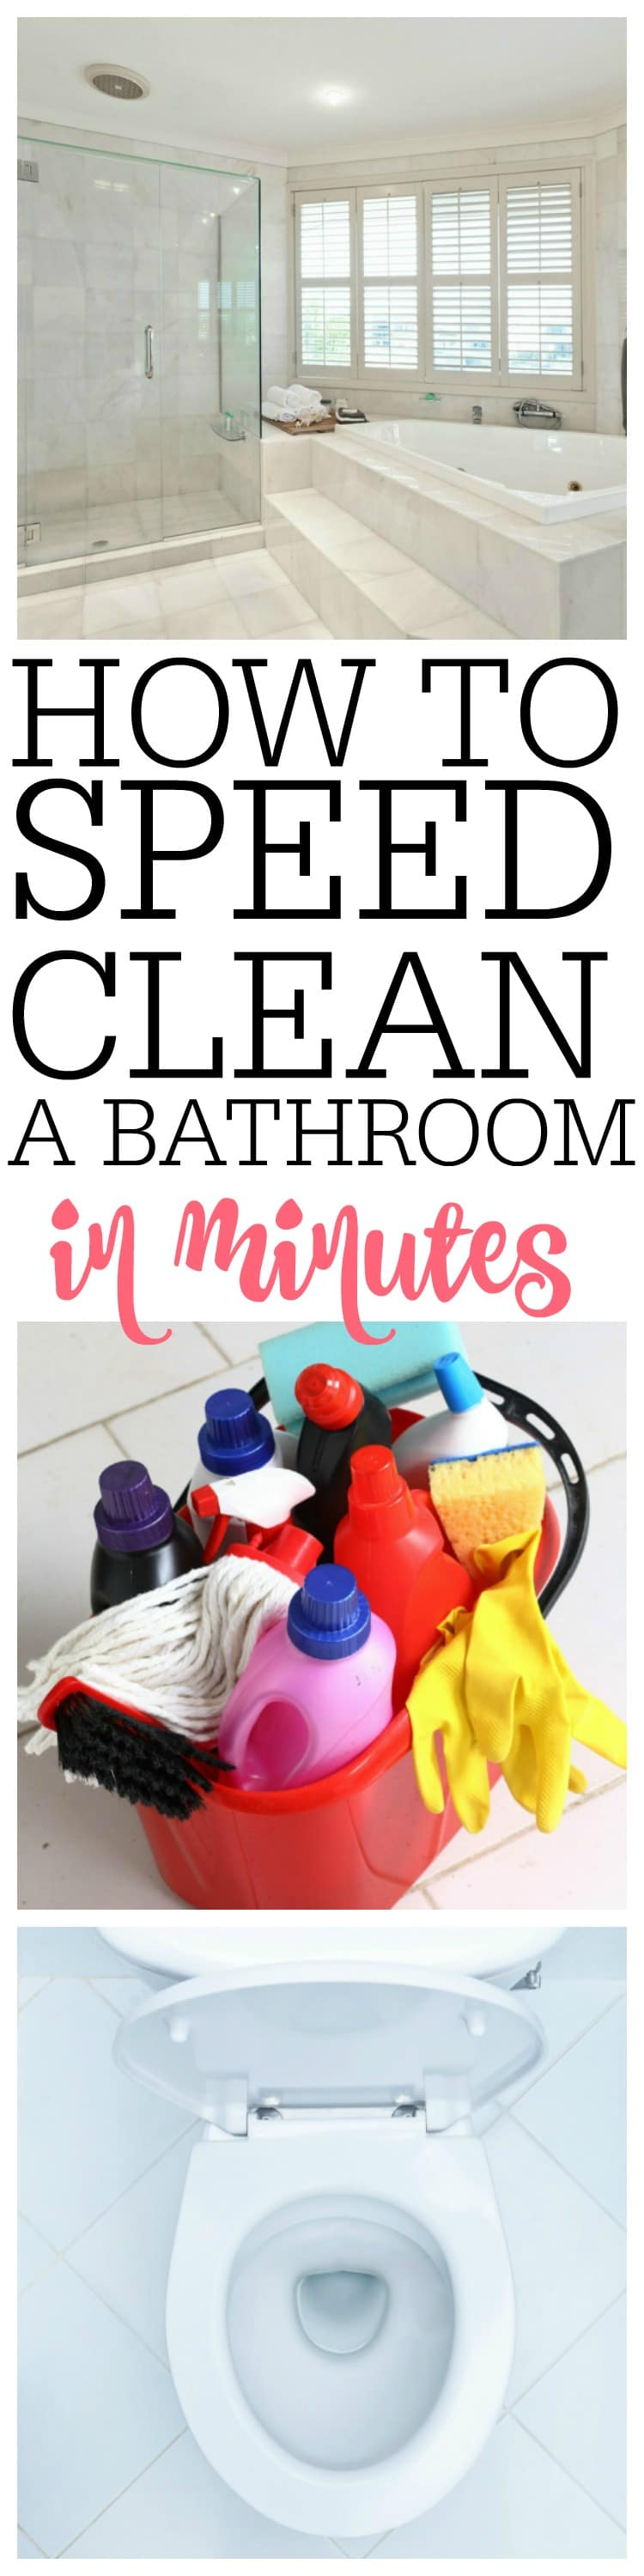 Want a better way to clean the bathroom? Work through your bathroom cleaning in minutes with these AMAZING tips on how to speed clean a bathroom.